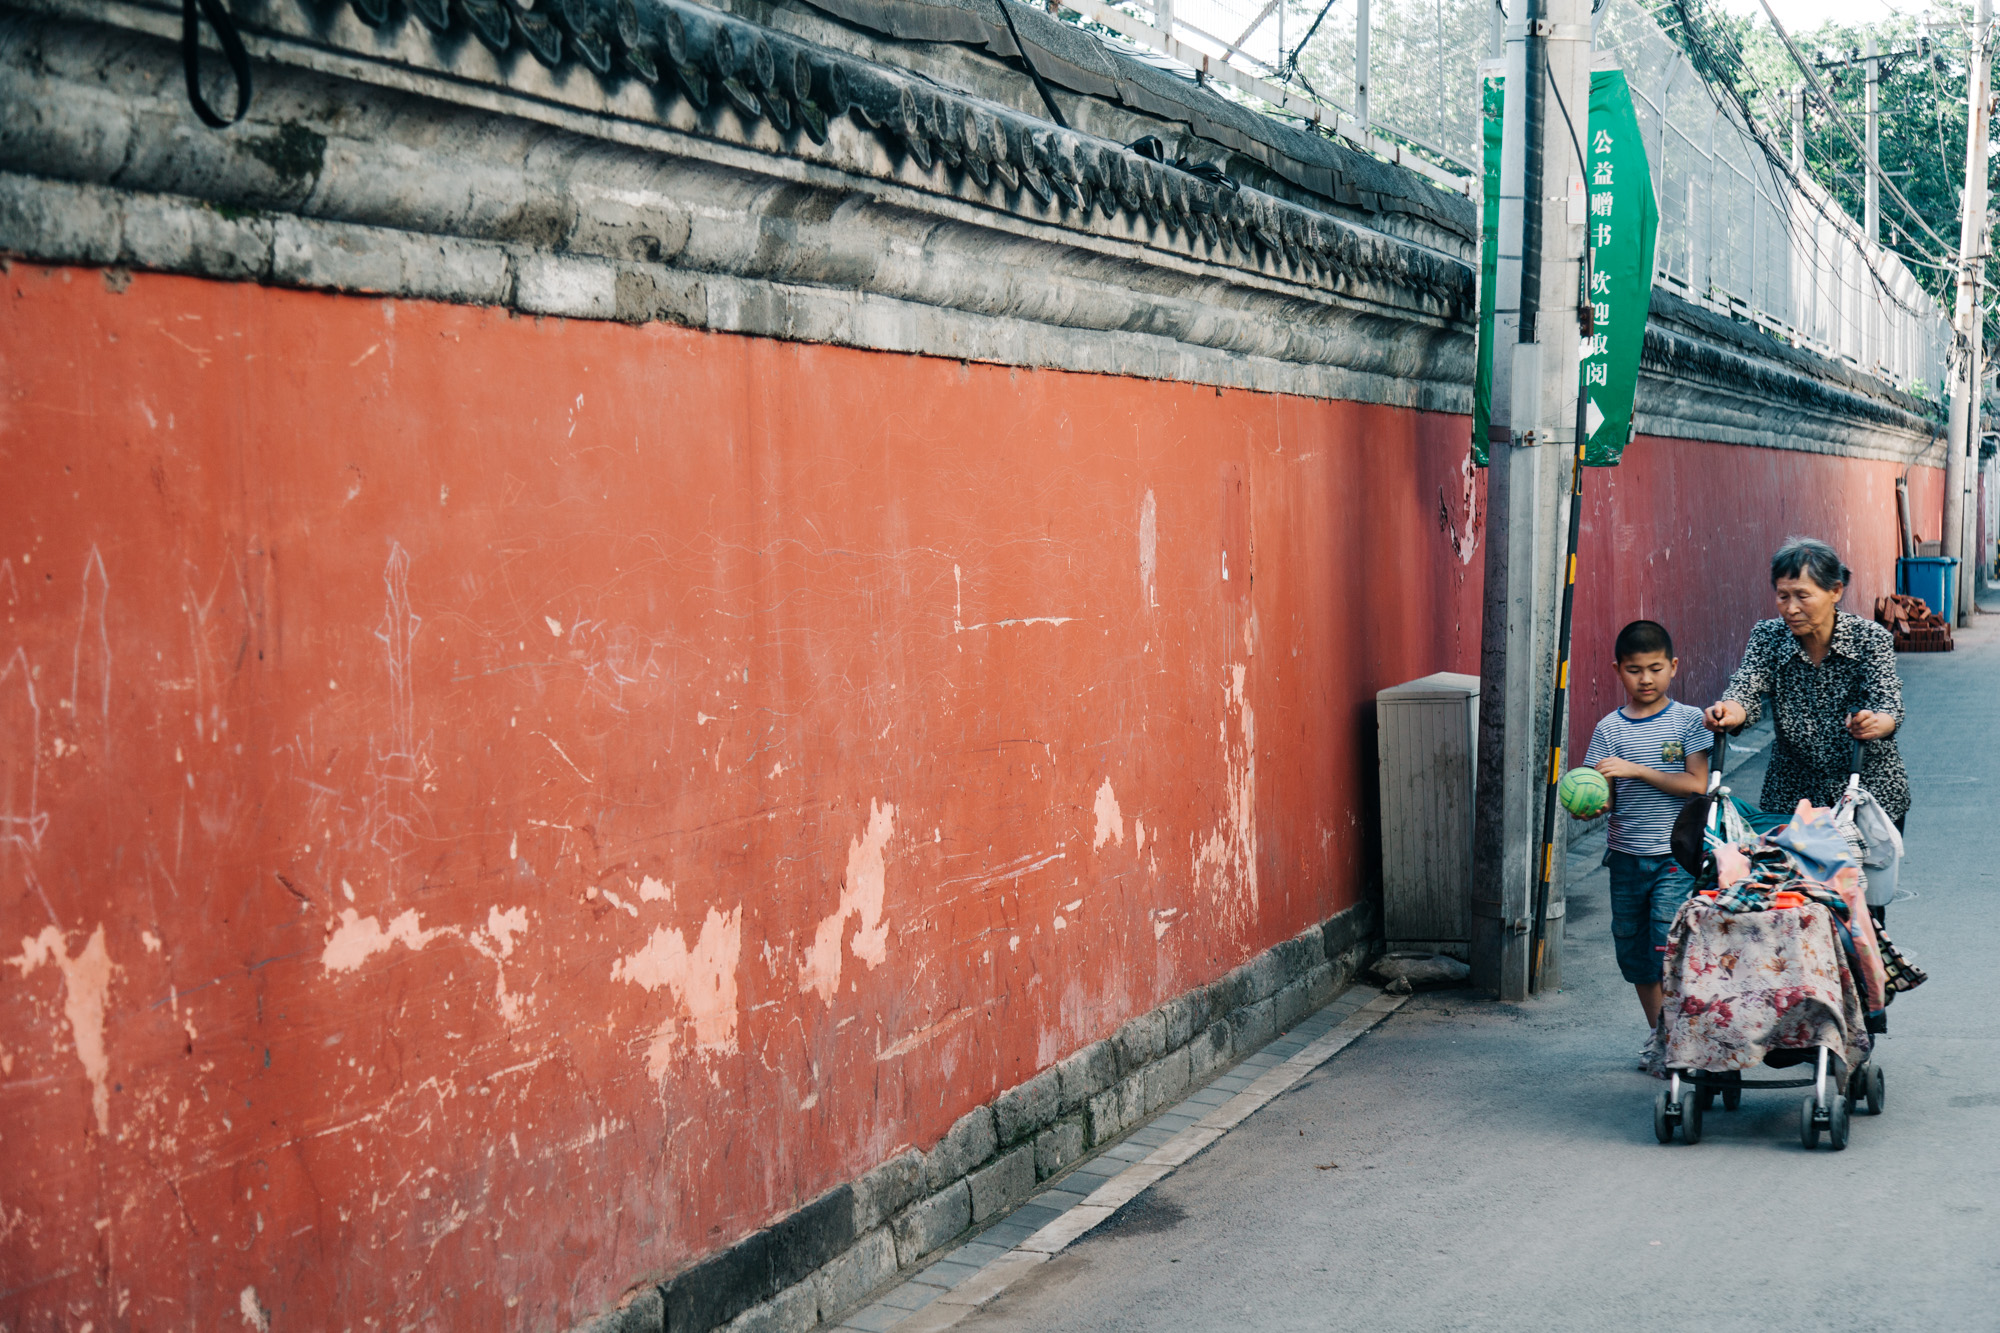 Hutongs - Hutongs are a type of narrow streets or alleys, commonly associated with northern Chinese cities most prominently Beijing.